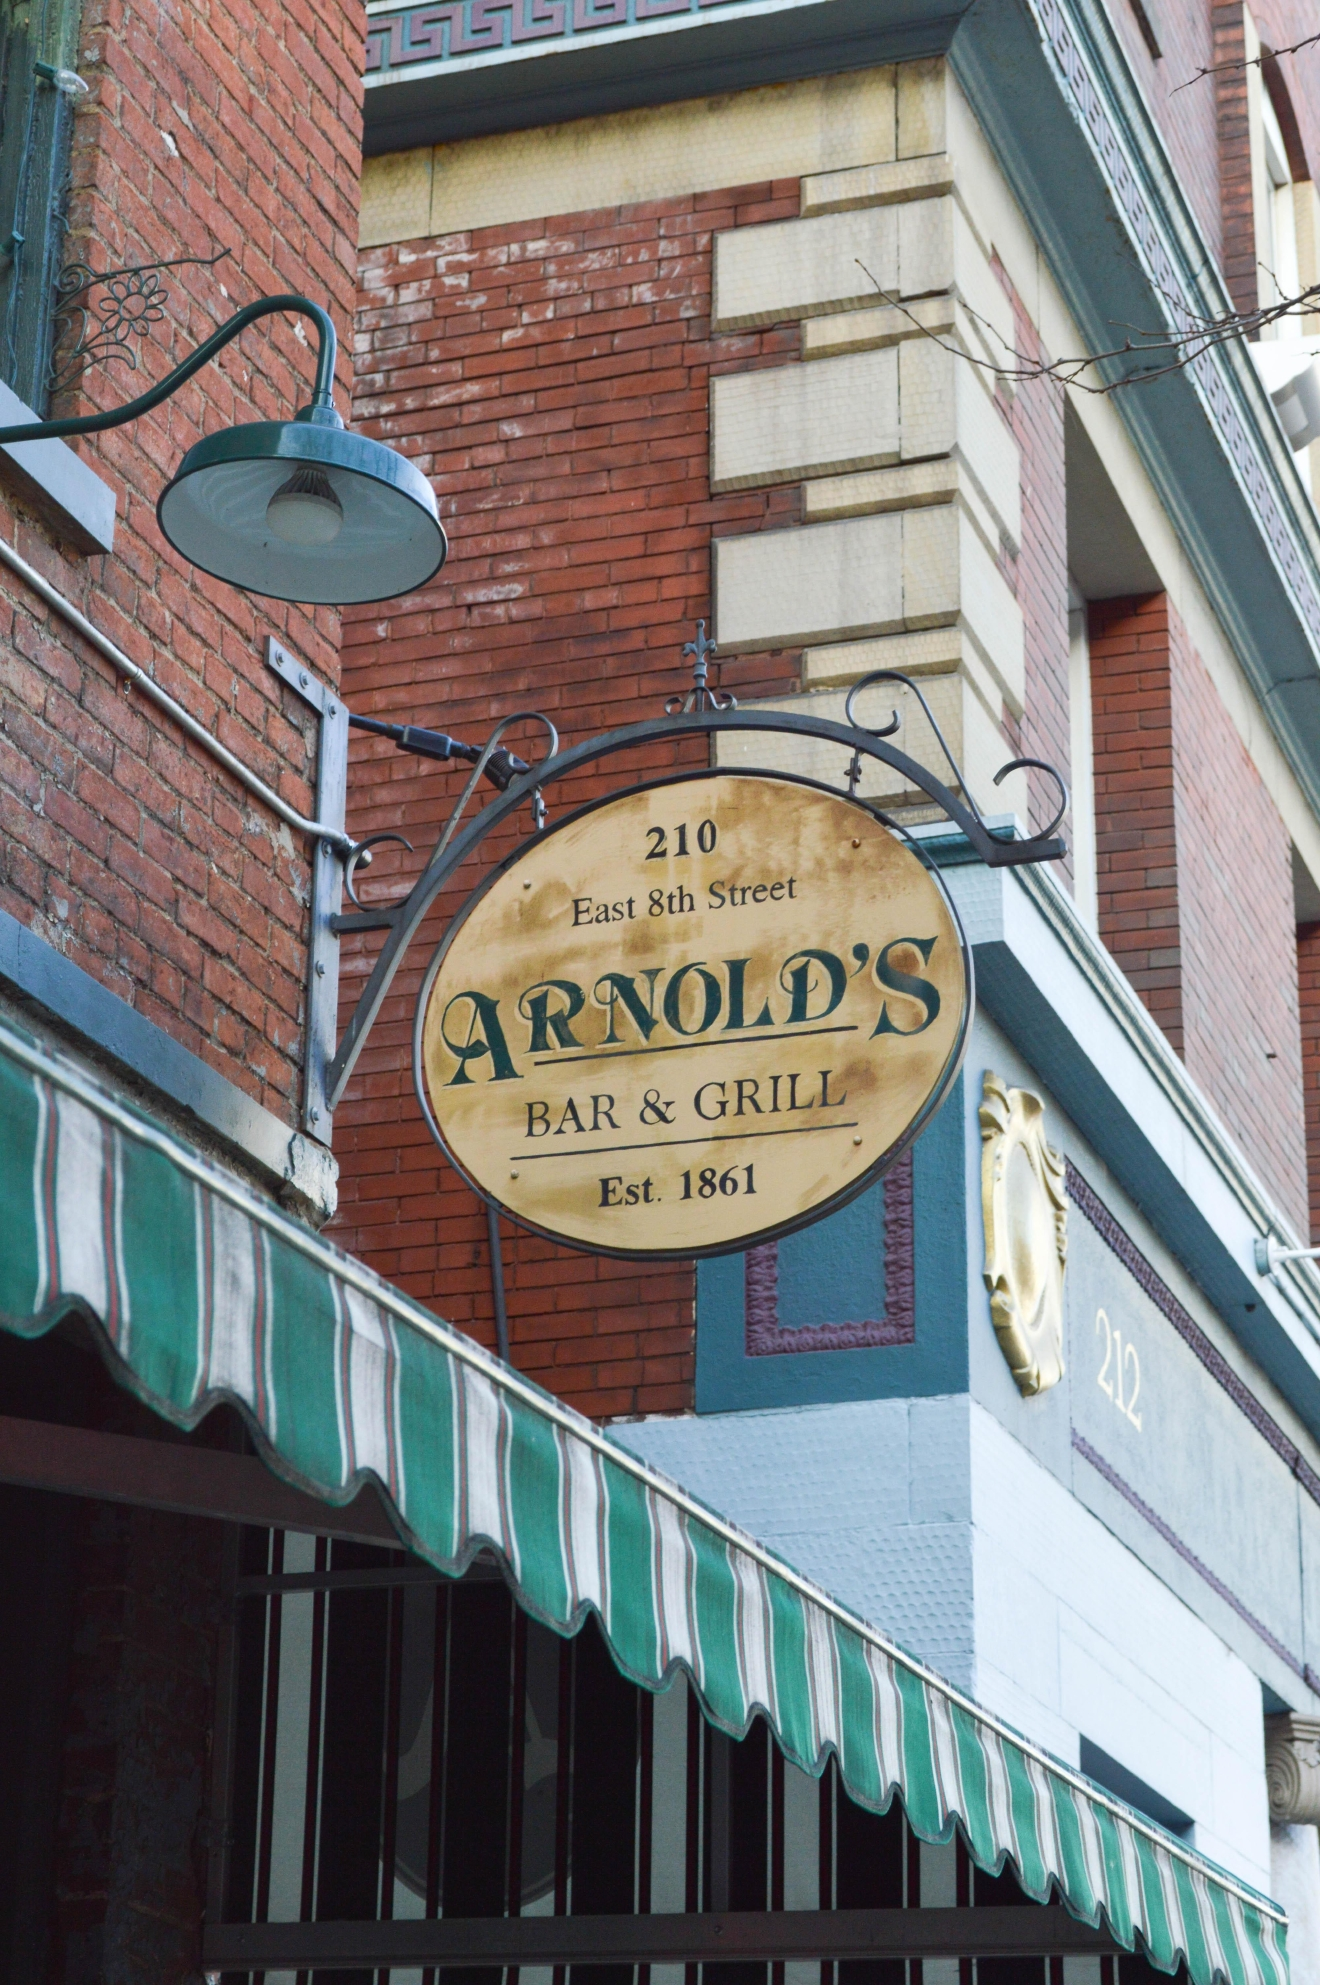 BAR: Arnold's Bar and Grill / LOCATION: 210 E. 8th Street / CLOSEST STOP: 8th & Main Station // IMAGE: Liliana Dillingham /// Published: 11.30.16